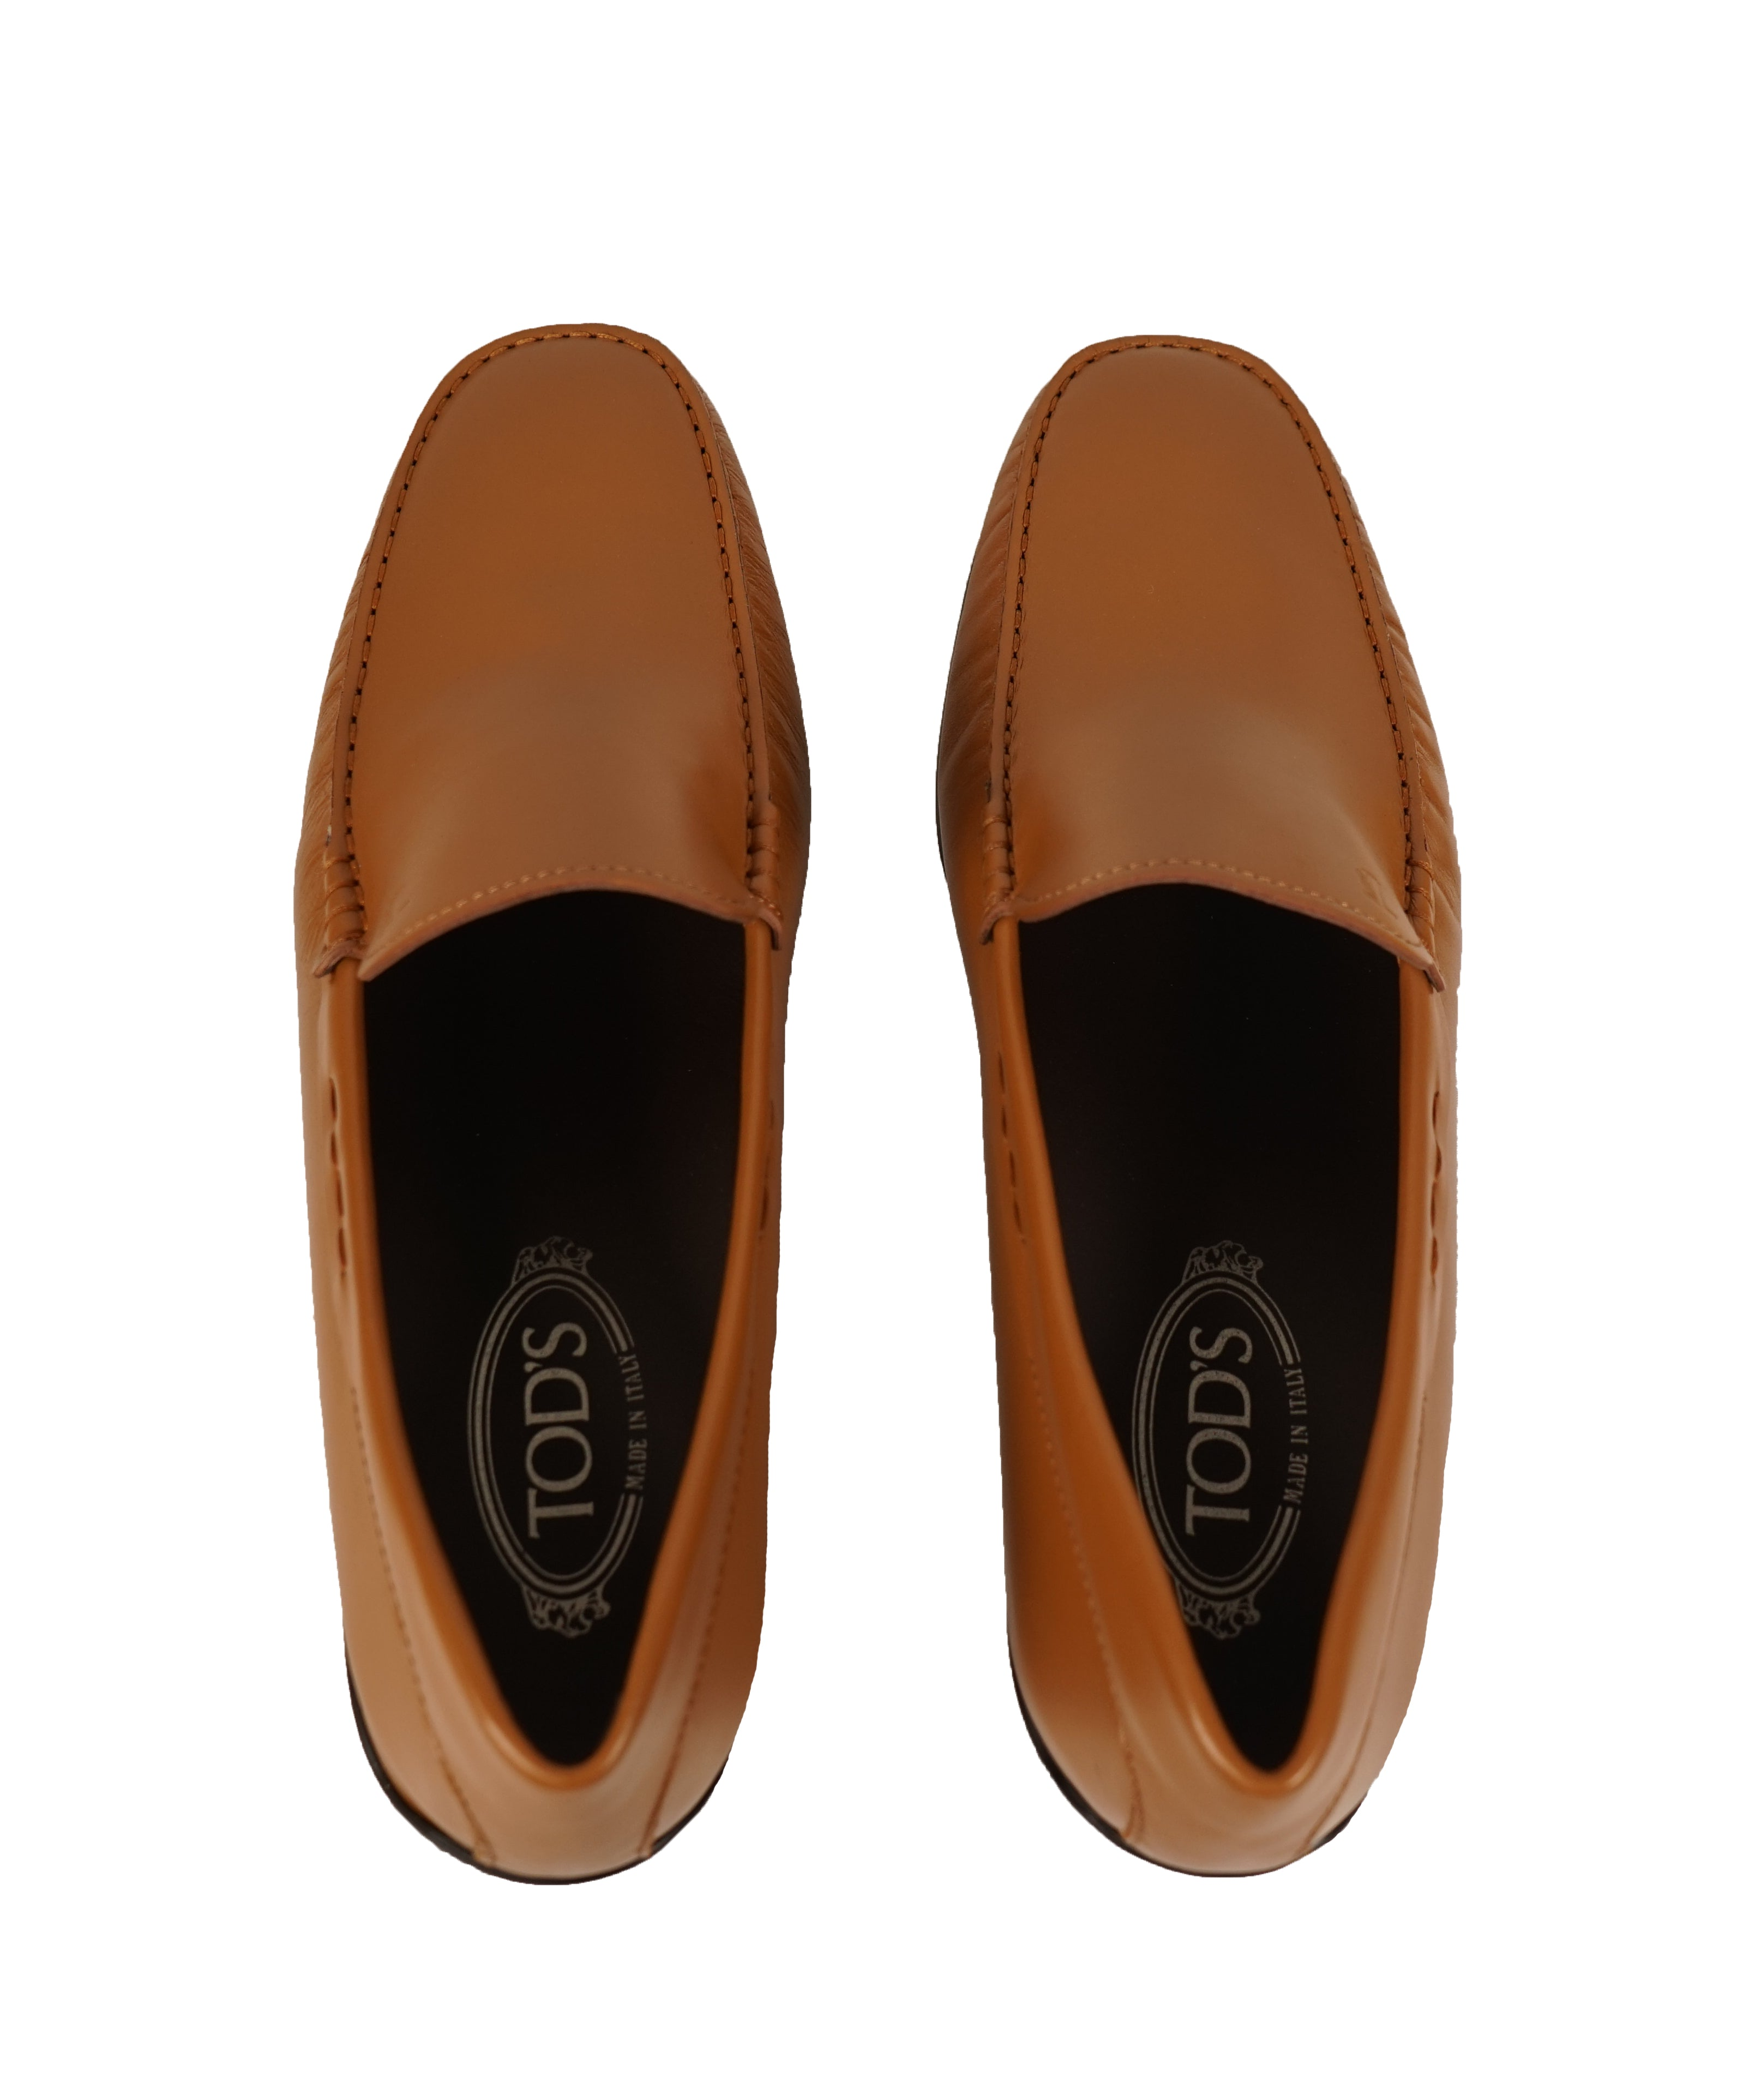 "TOD'S- Brown ""LOGO Gommini"" Vamp Engraved Italian Leather Loafers - 12.5"